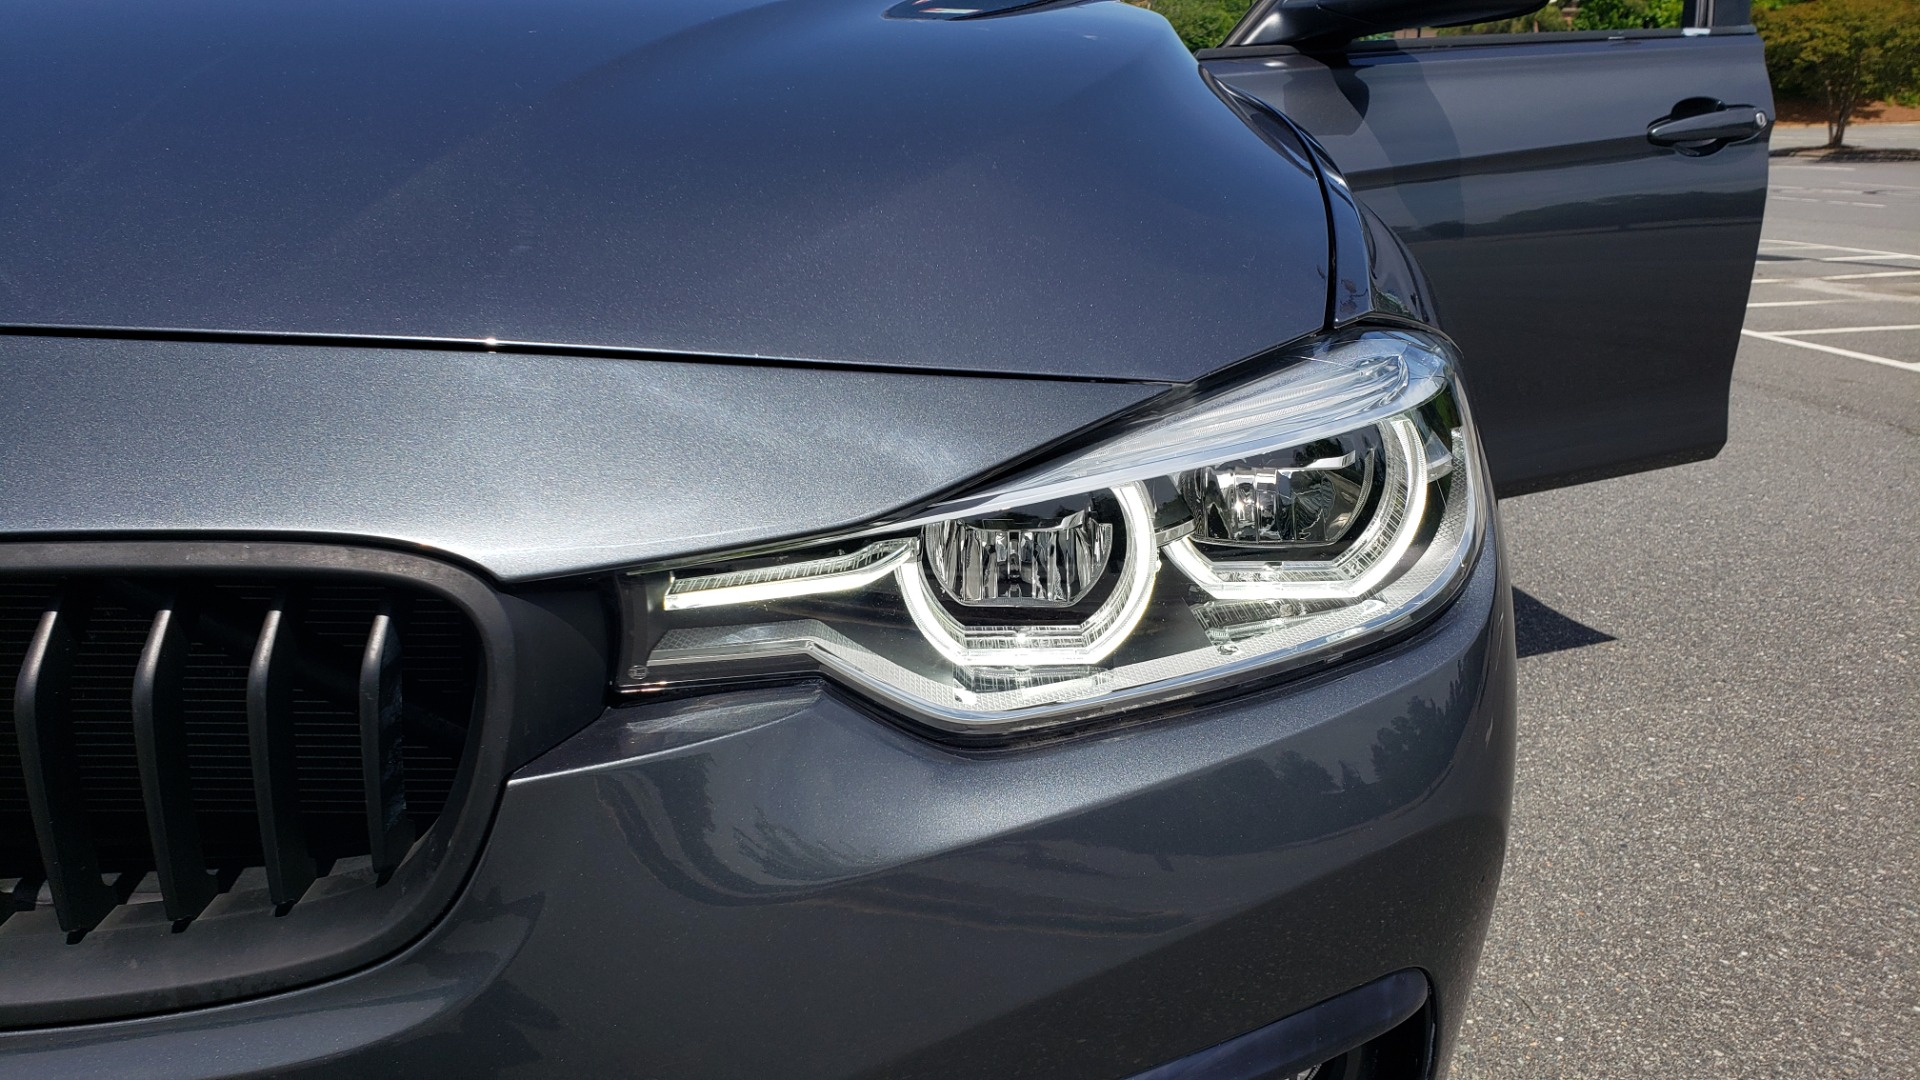 Used 2018 BMW 3 SERIES 330I XDRIVE / CONV PKG / SUNROOF / SPORT STS / HTD STS / REARVIEW for sale $28,495 at Formula Imports in Charlotte NC 28227 21